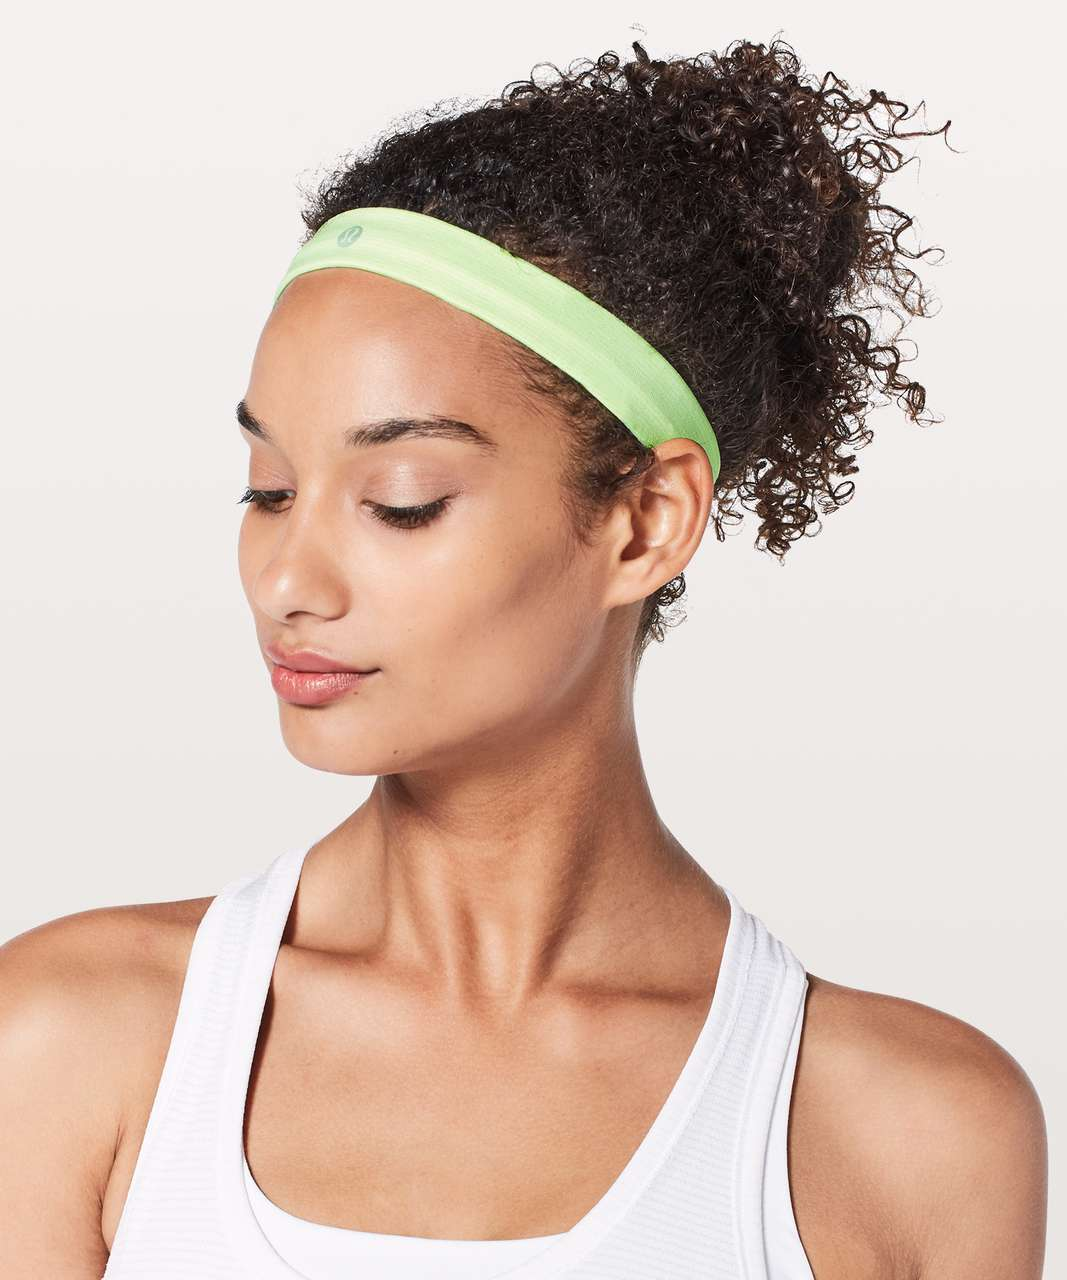 Lululemon Cardio Cross Trainer Headband - Fluro Citrus / White